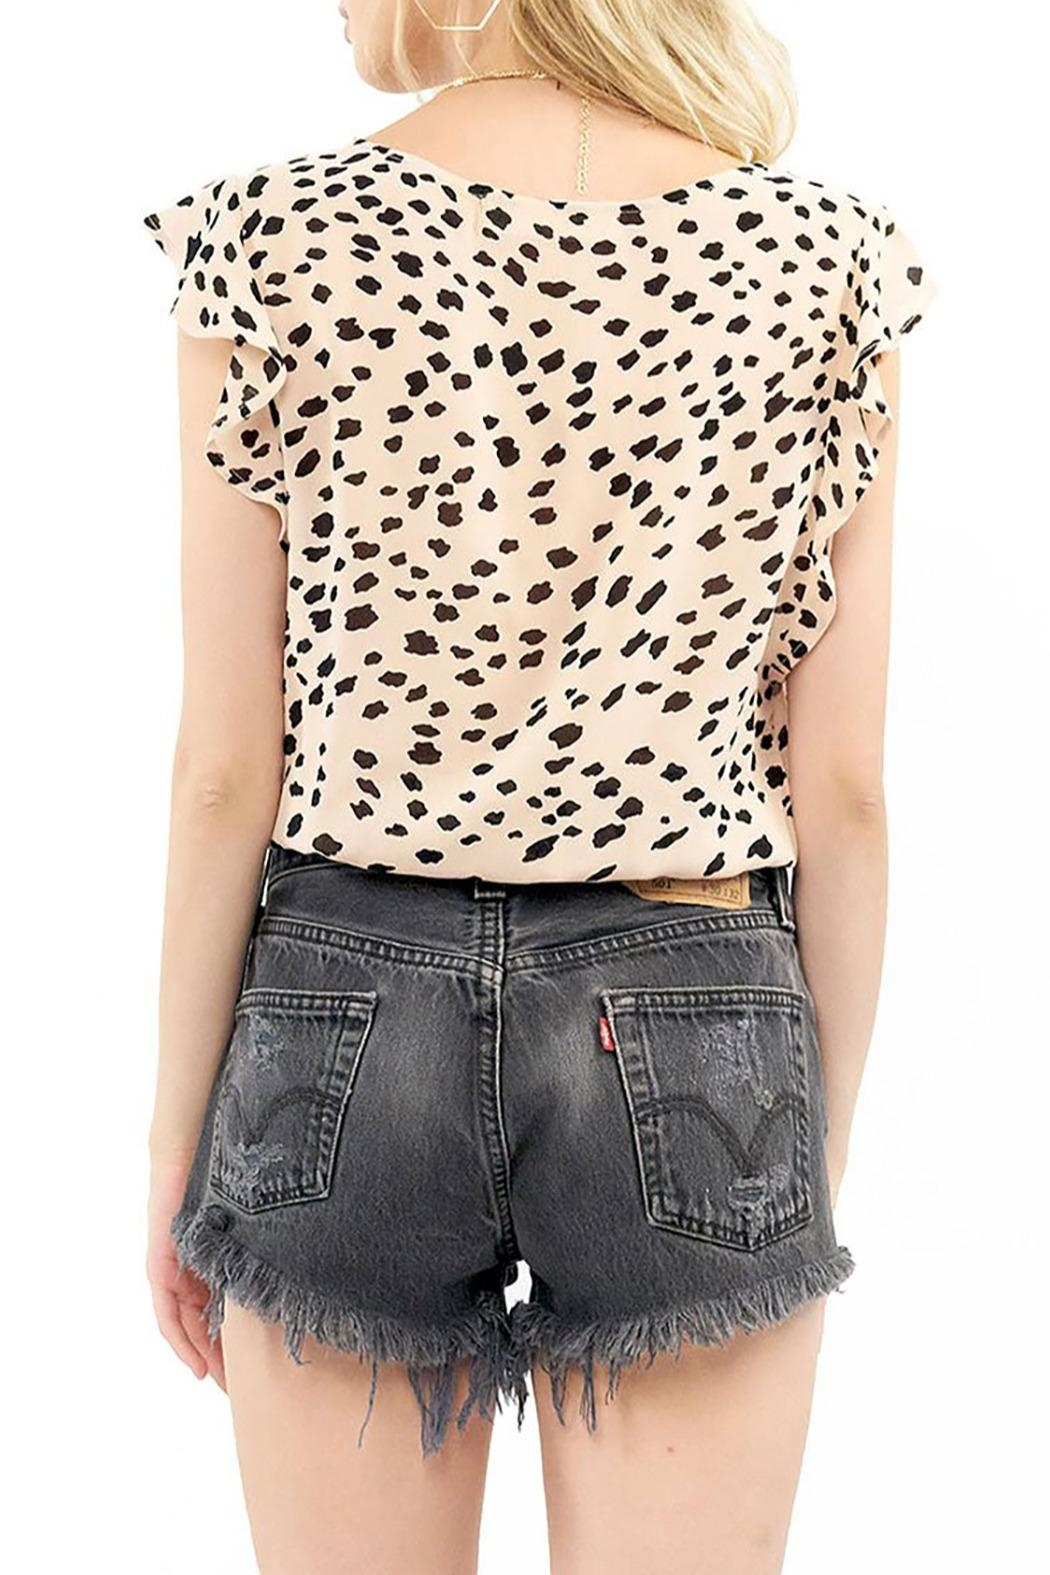 Saltwater Luxe Ruffle Button Top - Side Cropped Image